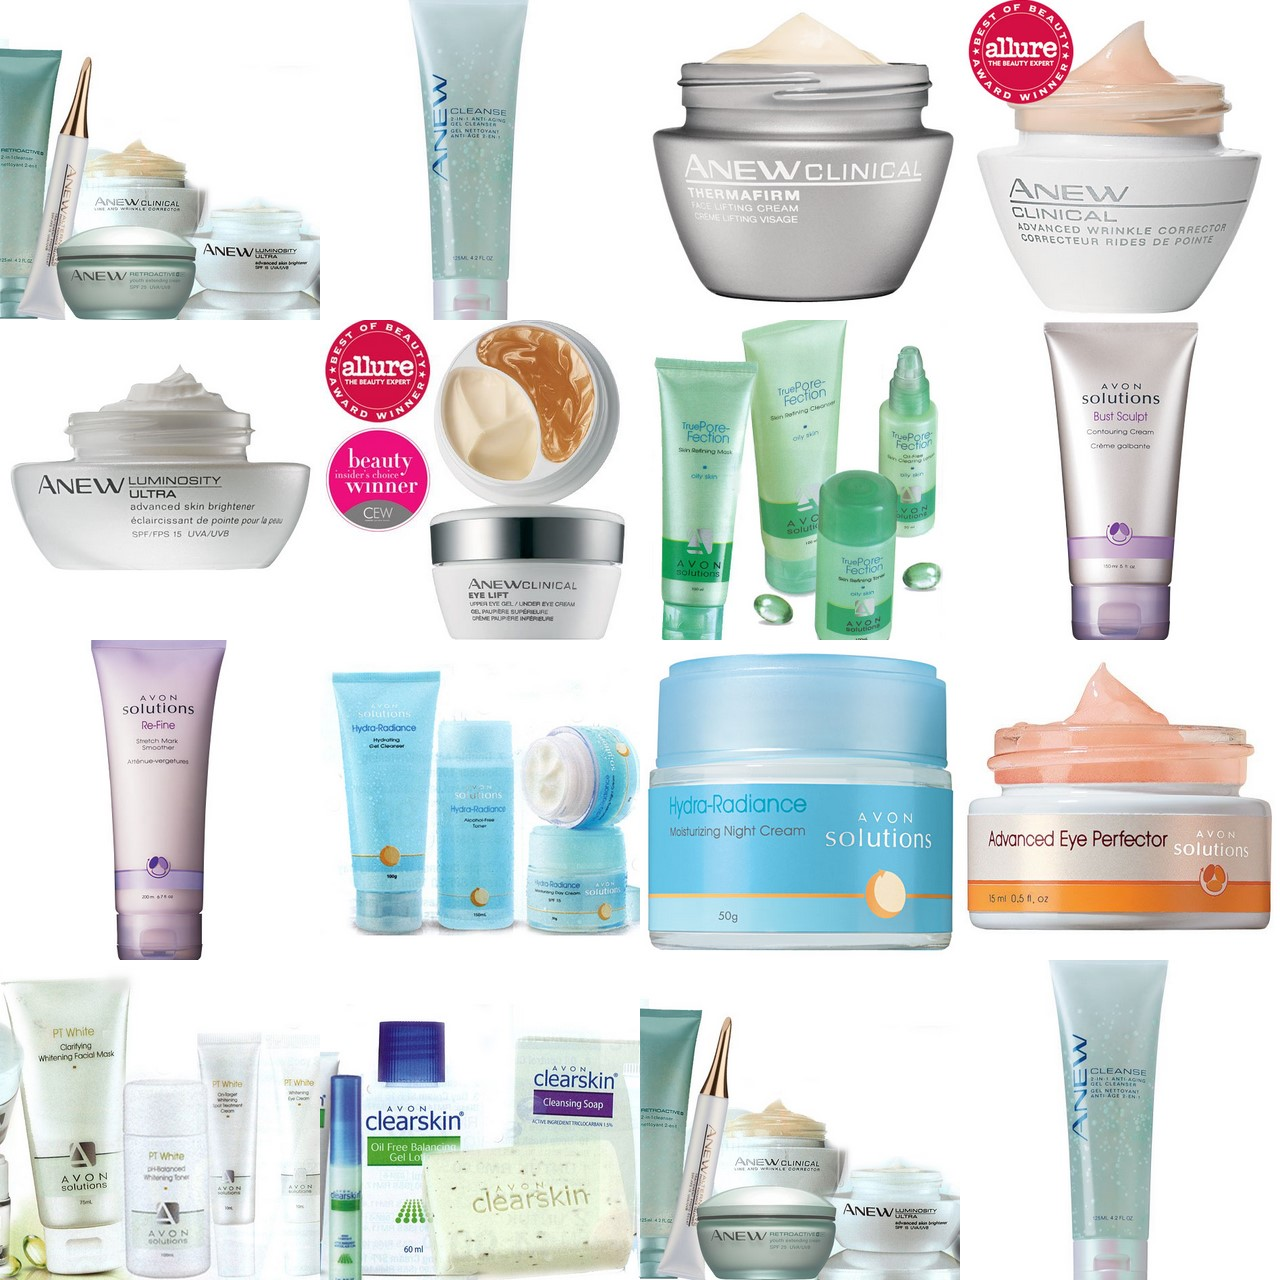 cosmatics: Avon Products In India